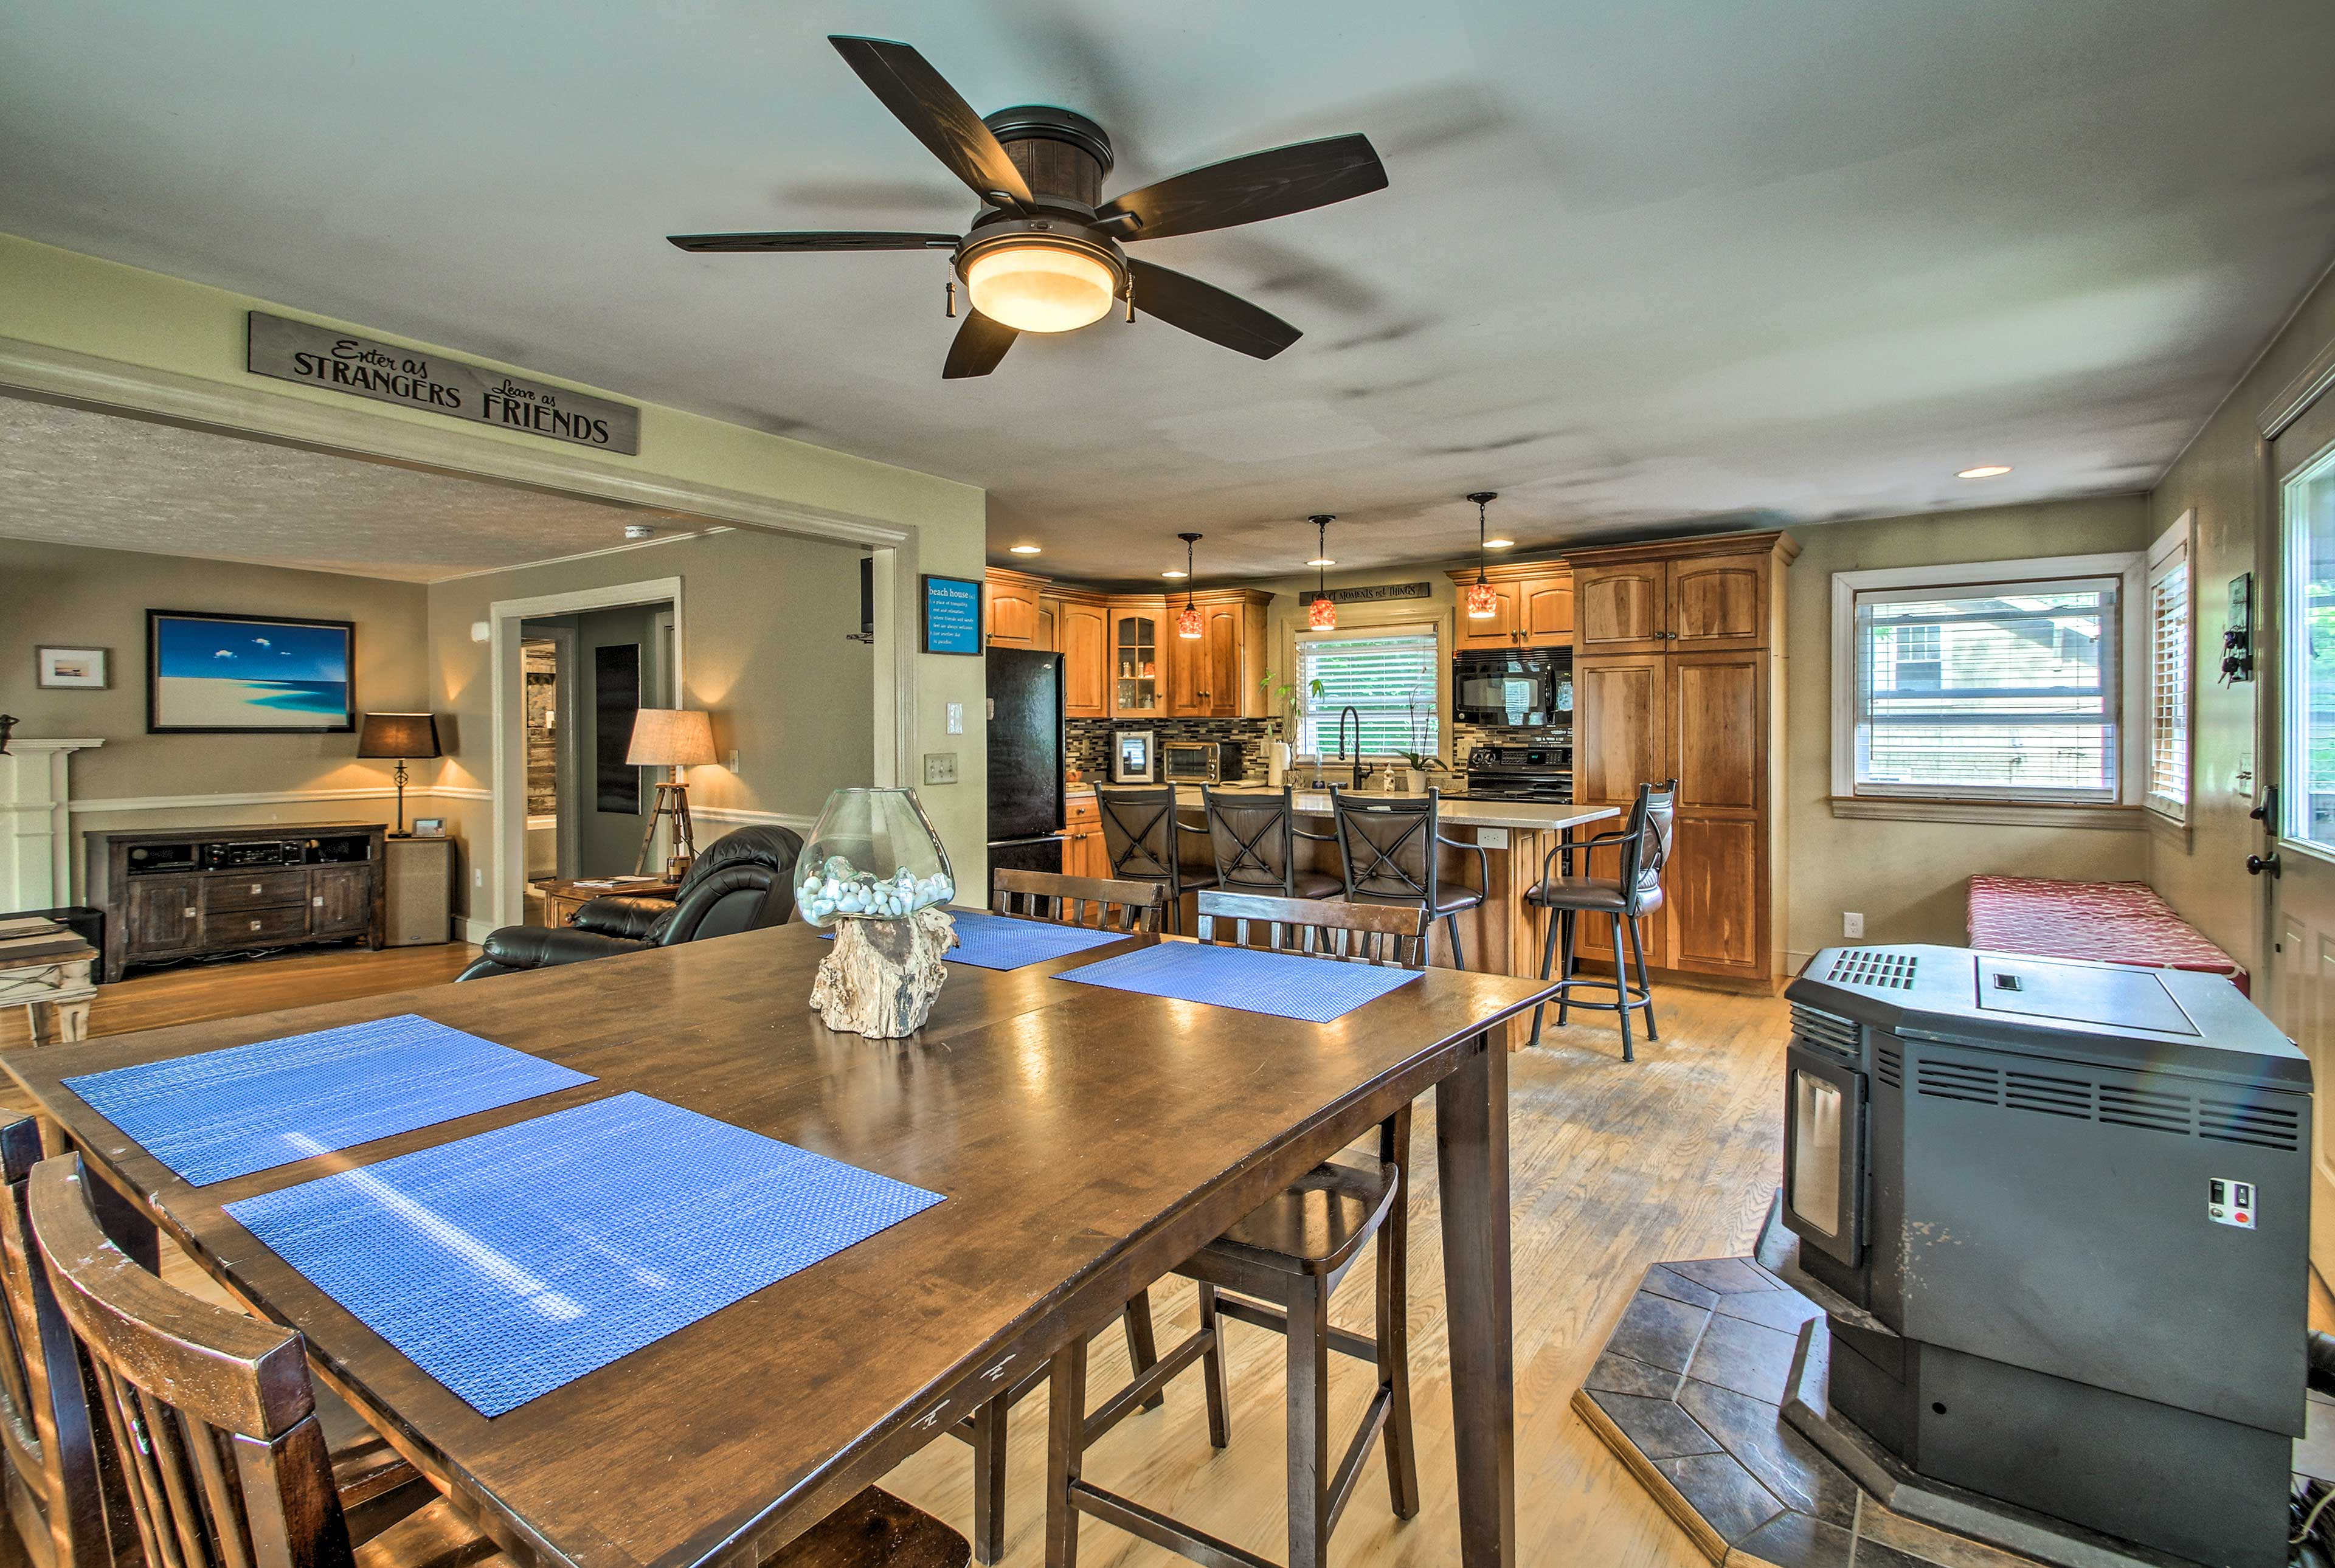 Spread out across the kitchen and dining table to enjoy your meal.